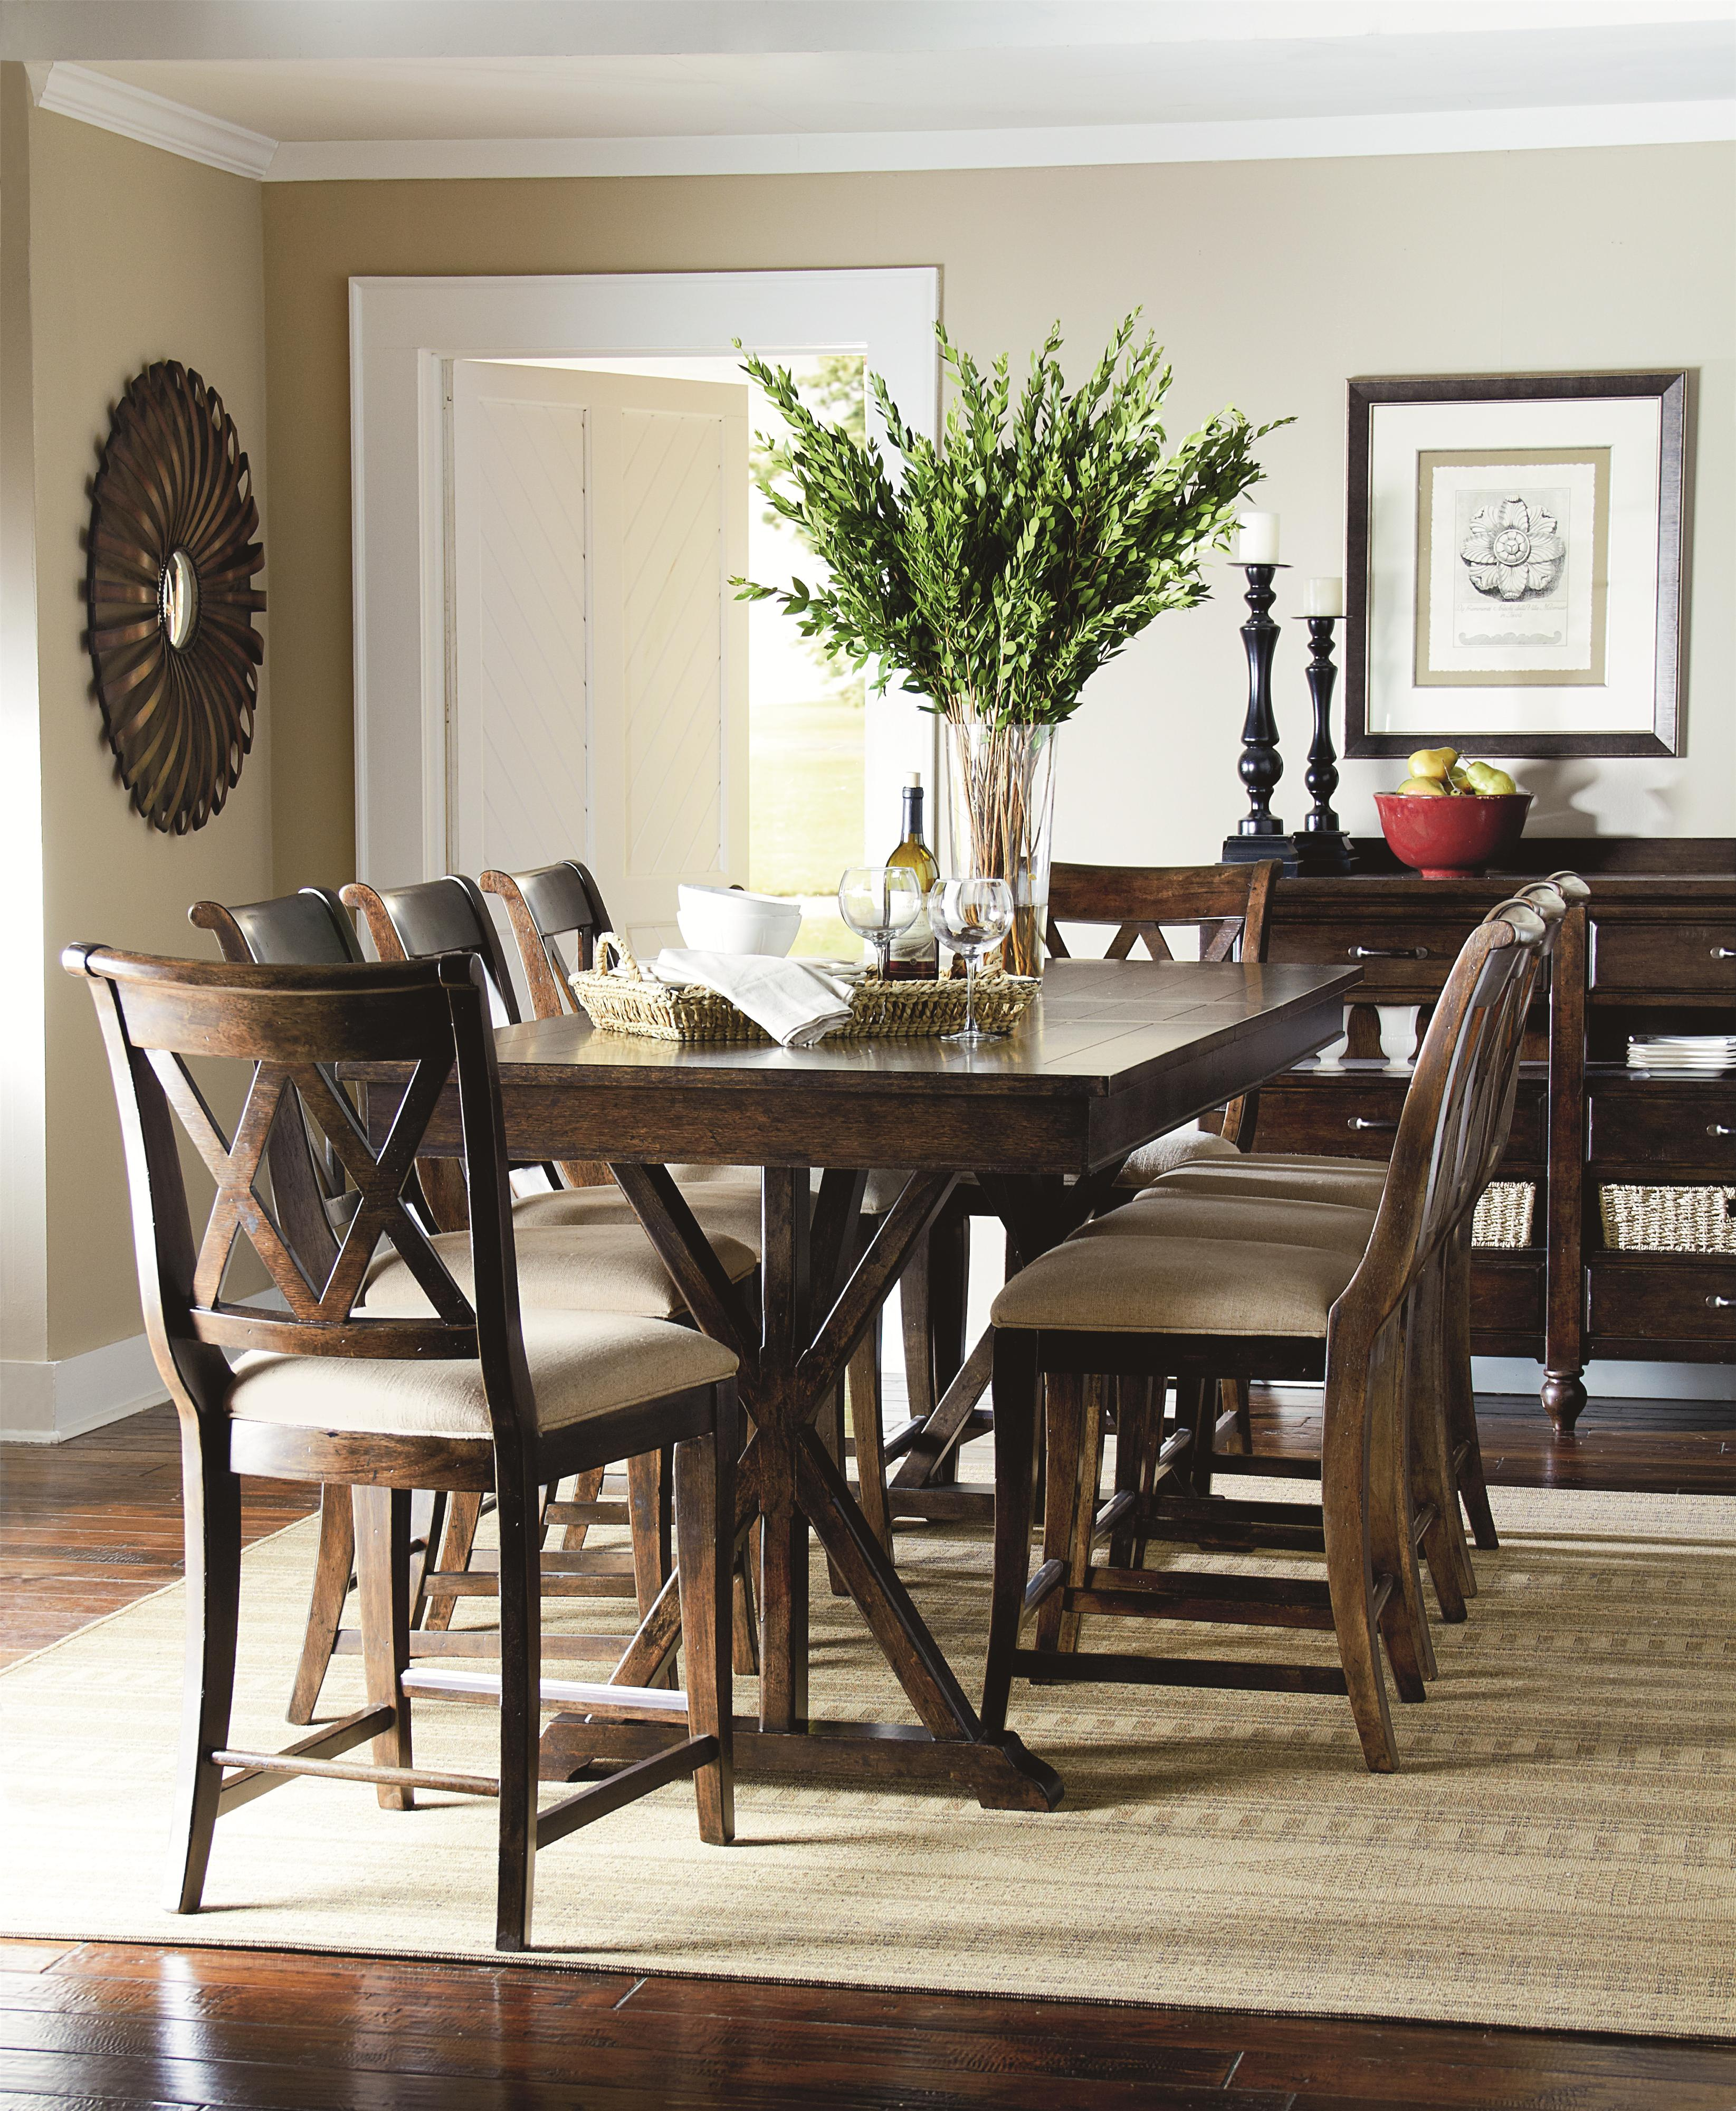 fascinating 9 piece counter height dining room sets gallery 3d pub table with trestle shape by legacy classic wolf and gardiner